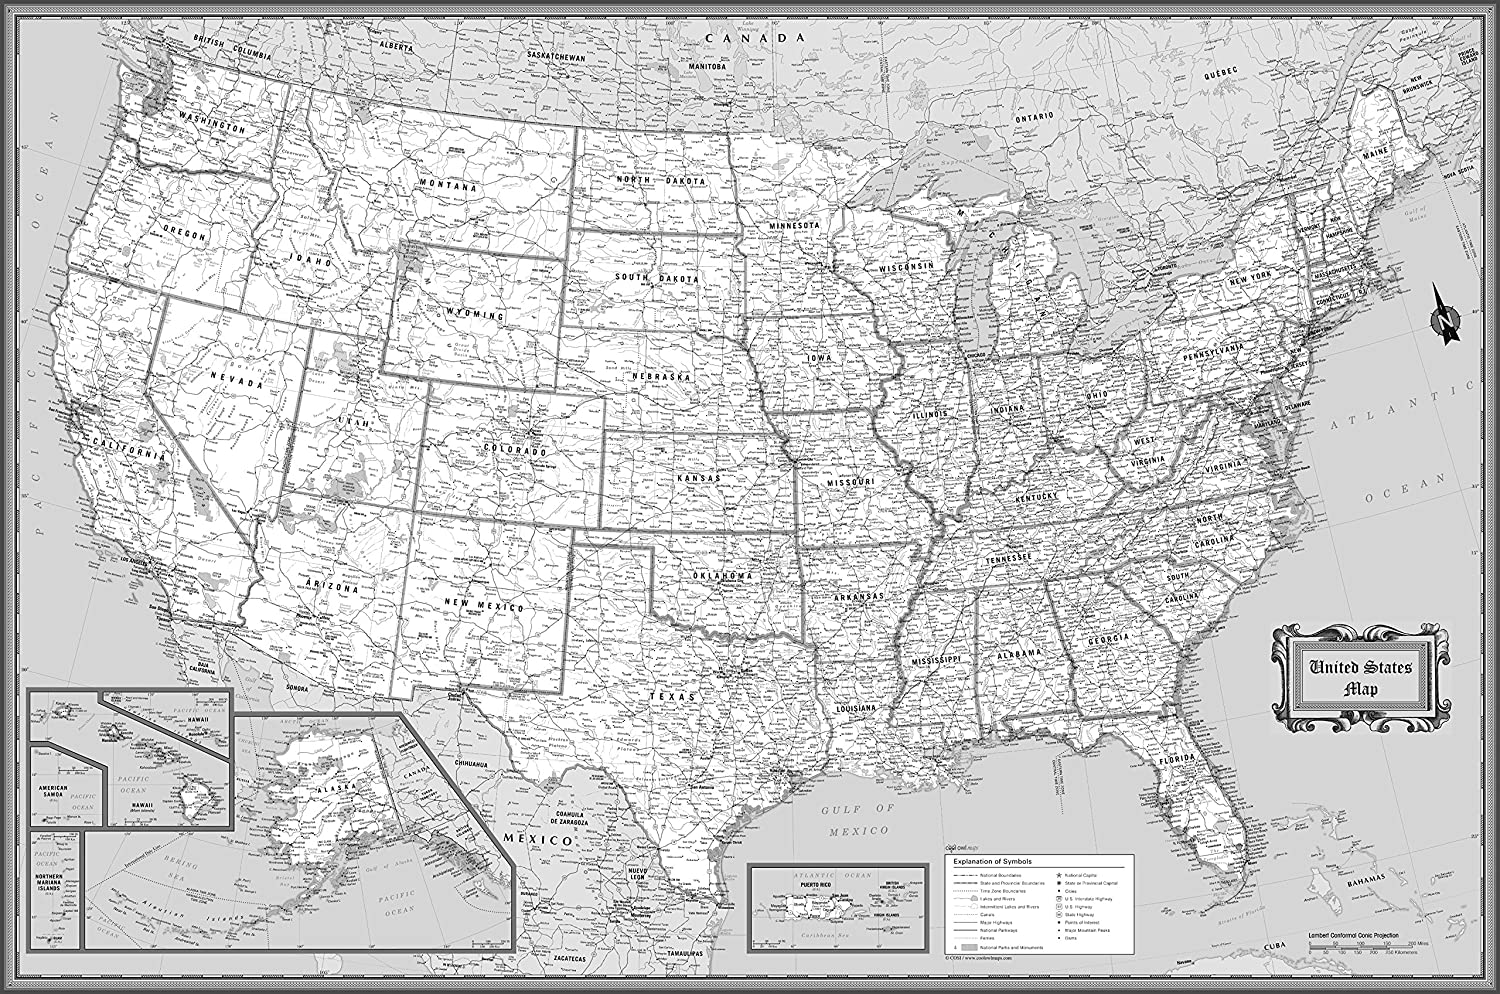 Amazon.: CoolOwlMaps United States Wall Map Black & White